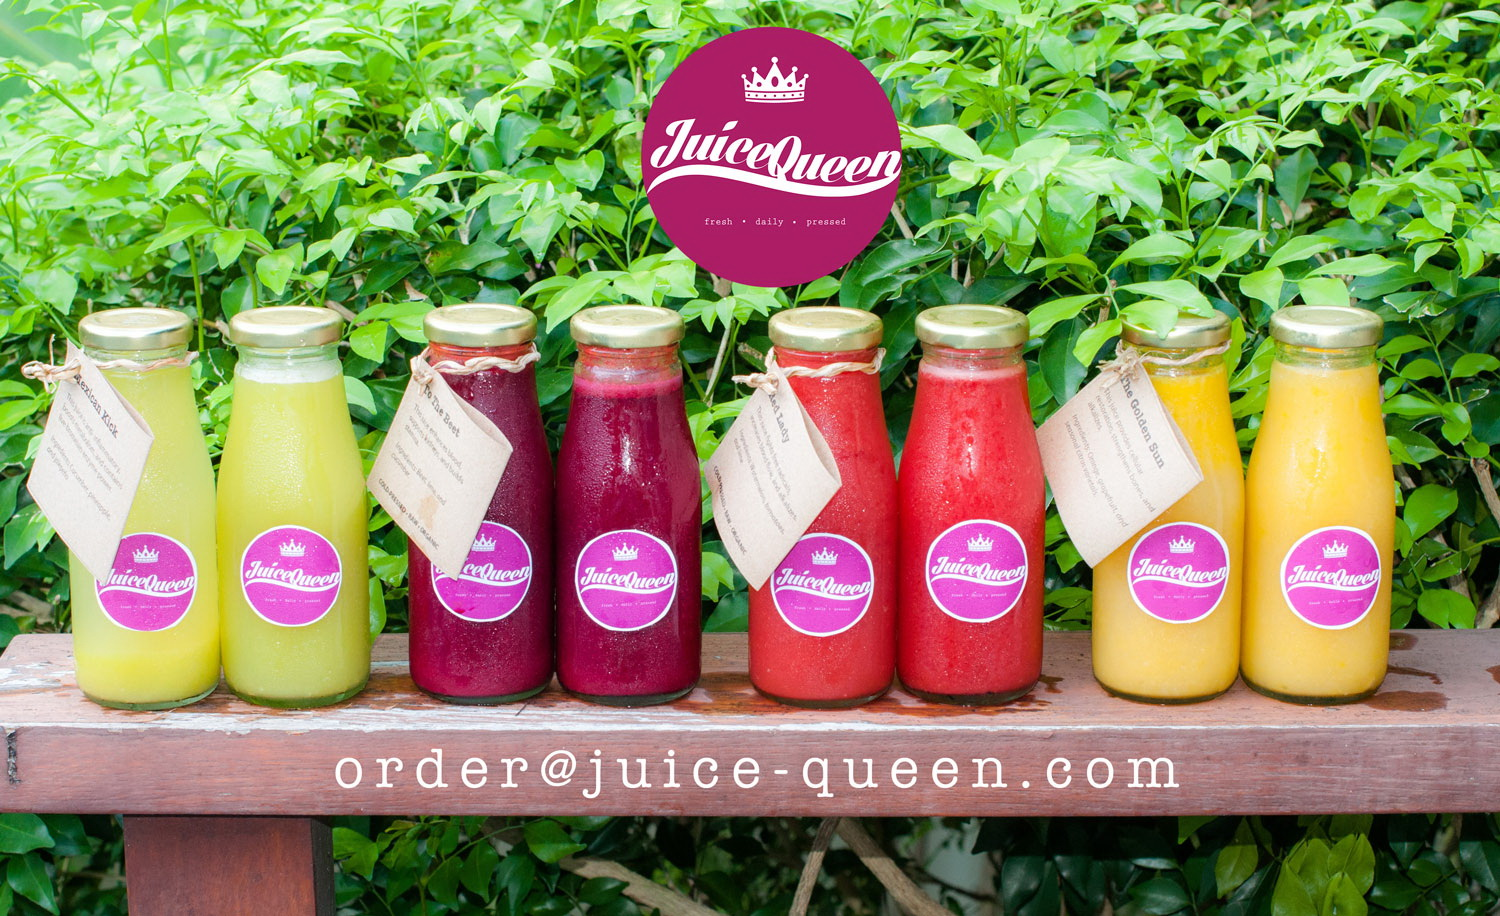 Juice Queen Samui delivers daily pressed juices for those interested in good health - Samui Times